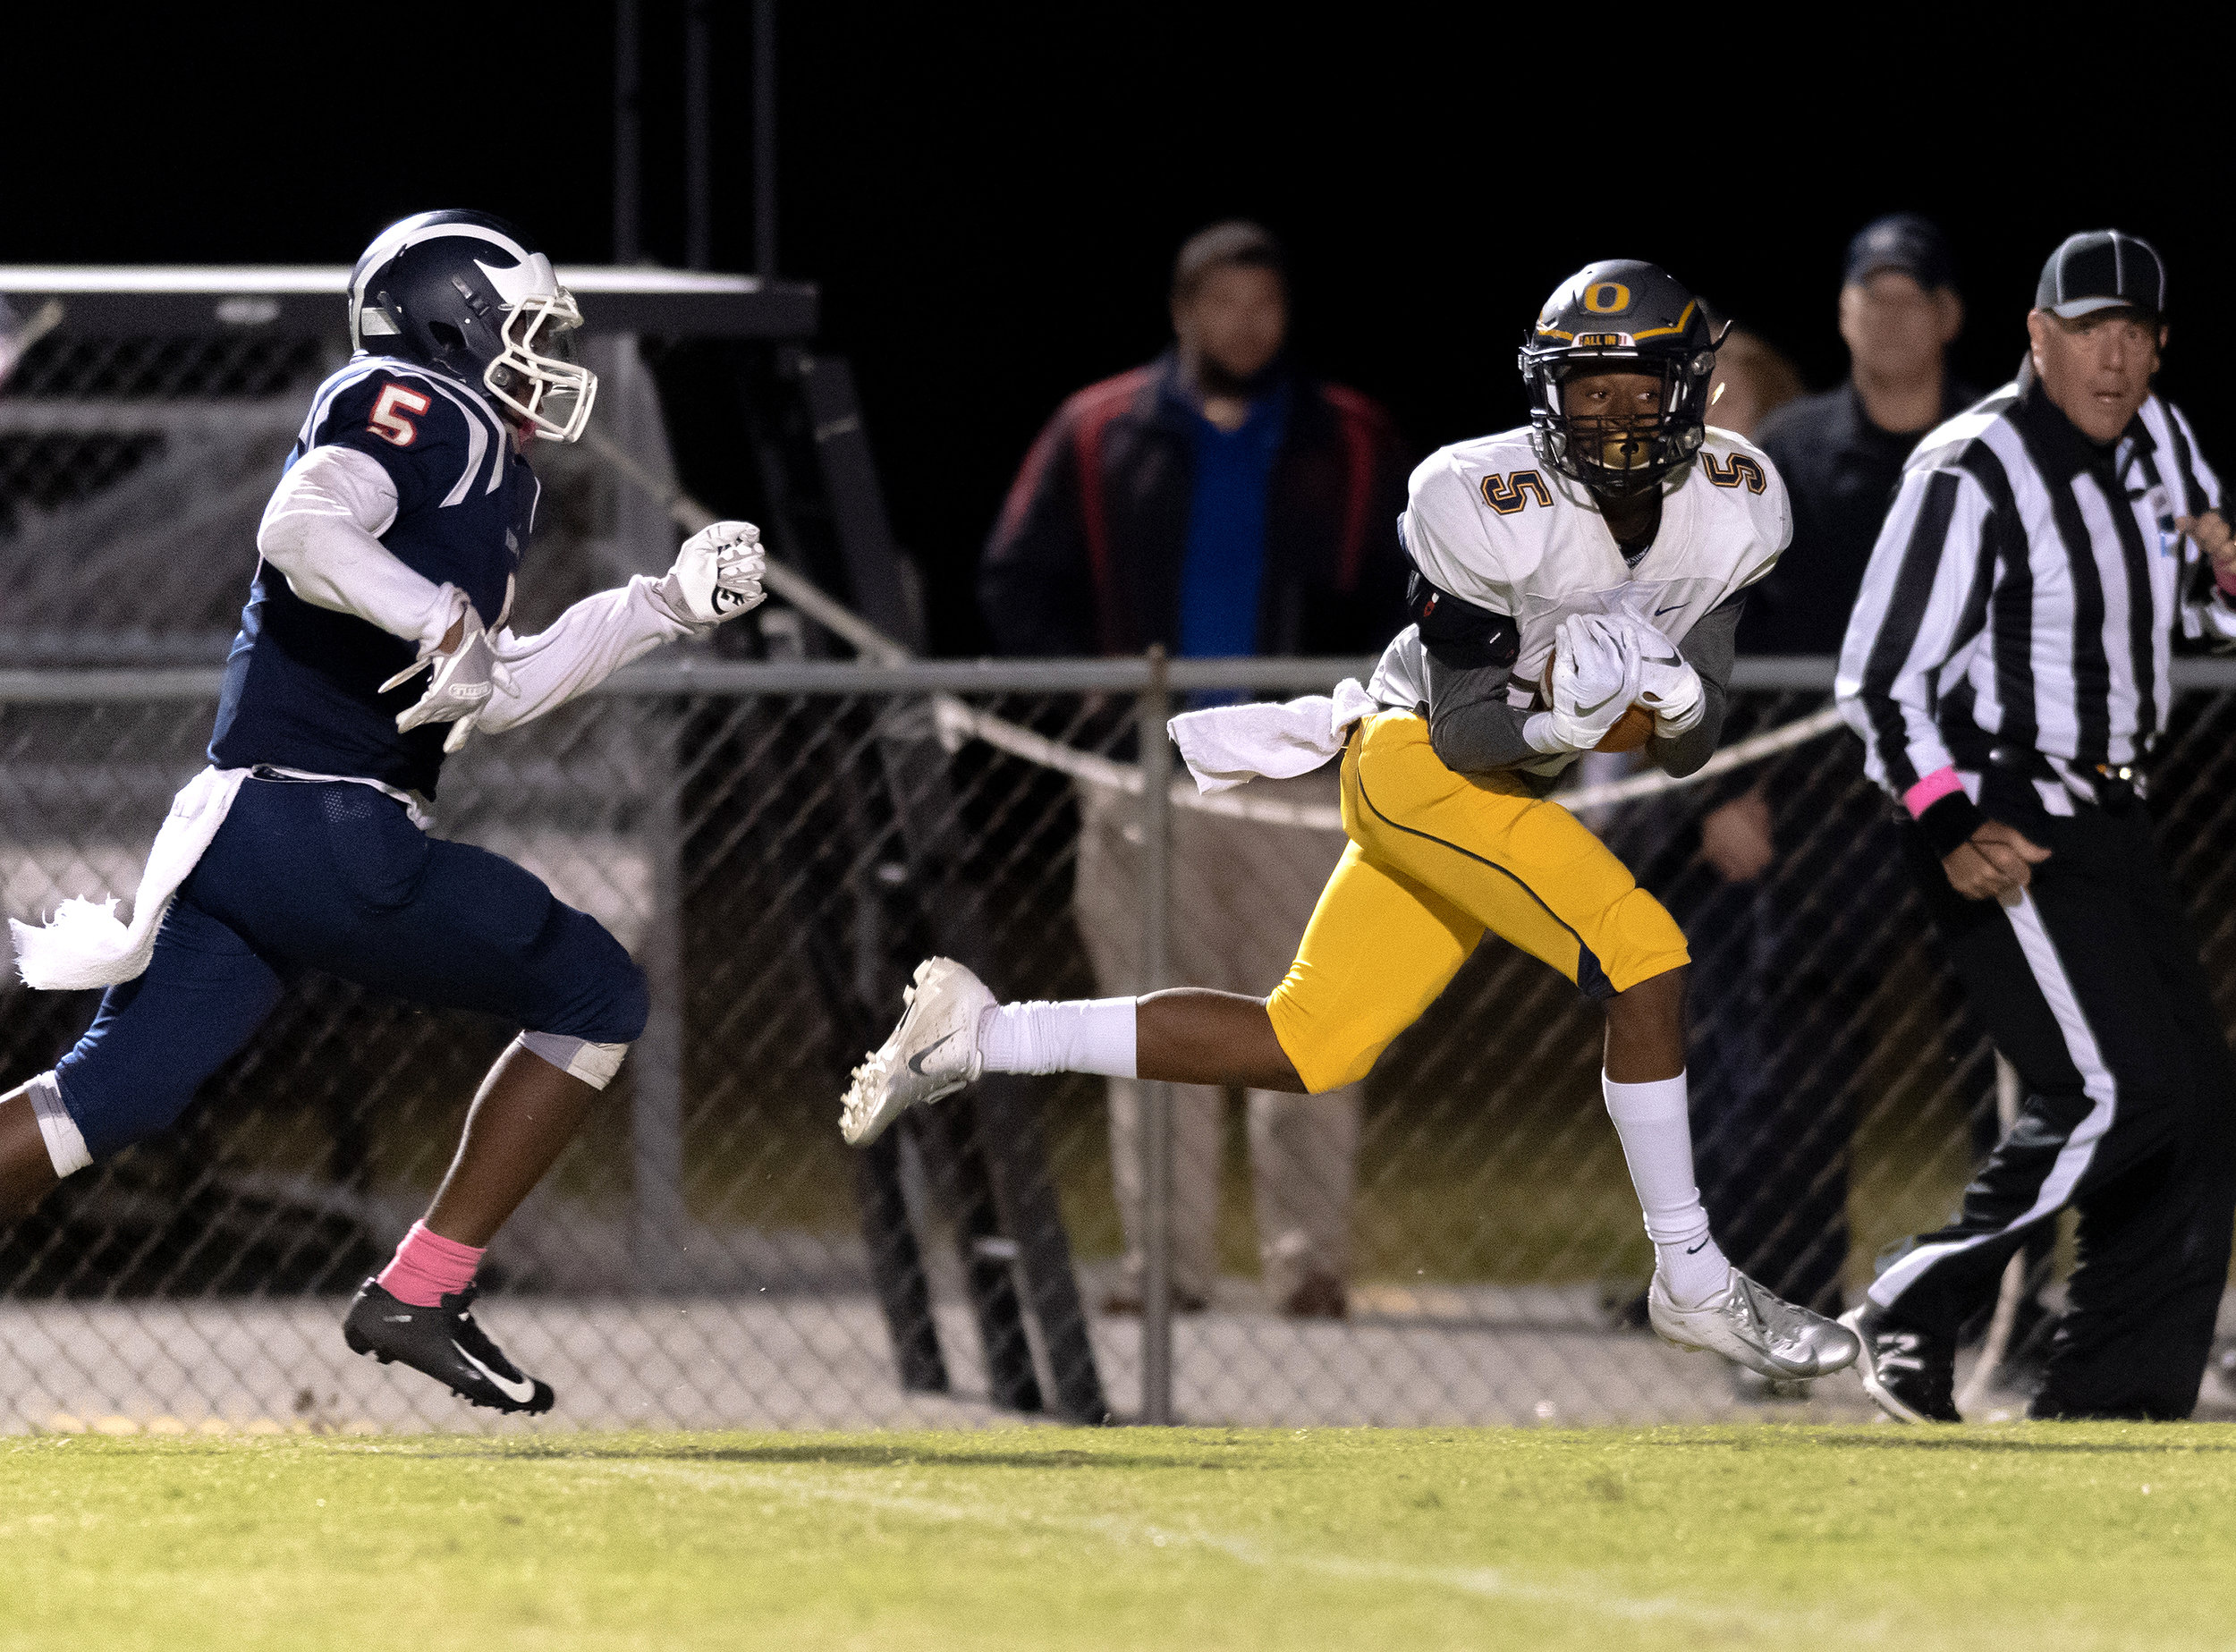 Game action from High School Football Ocean Lakes vs Kempsville held on Friday, October 19,2018 at Kempsville High School in Virginia Beach.